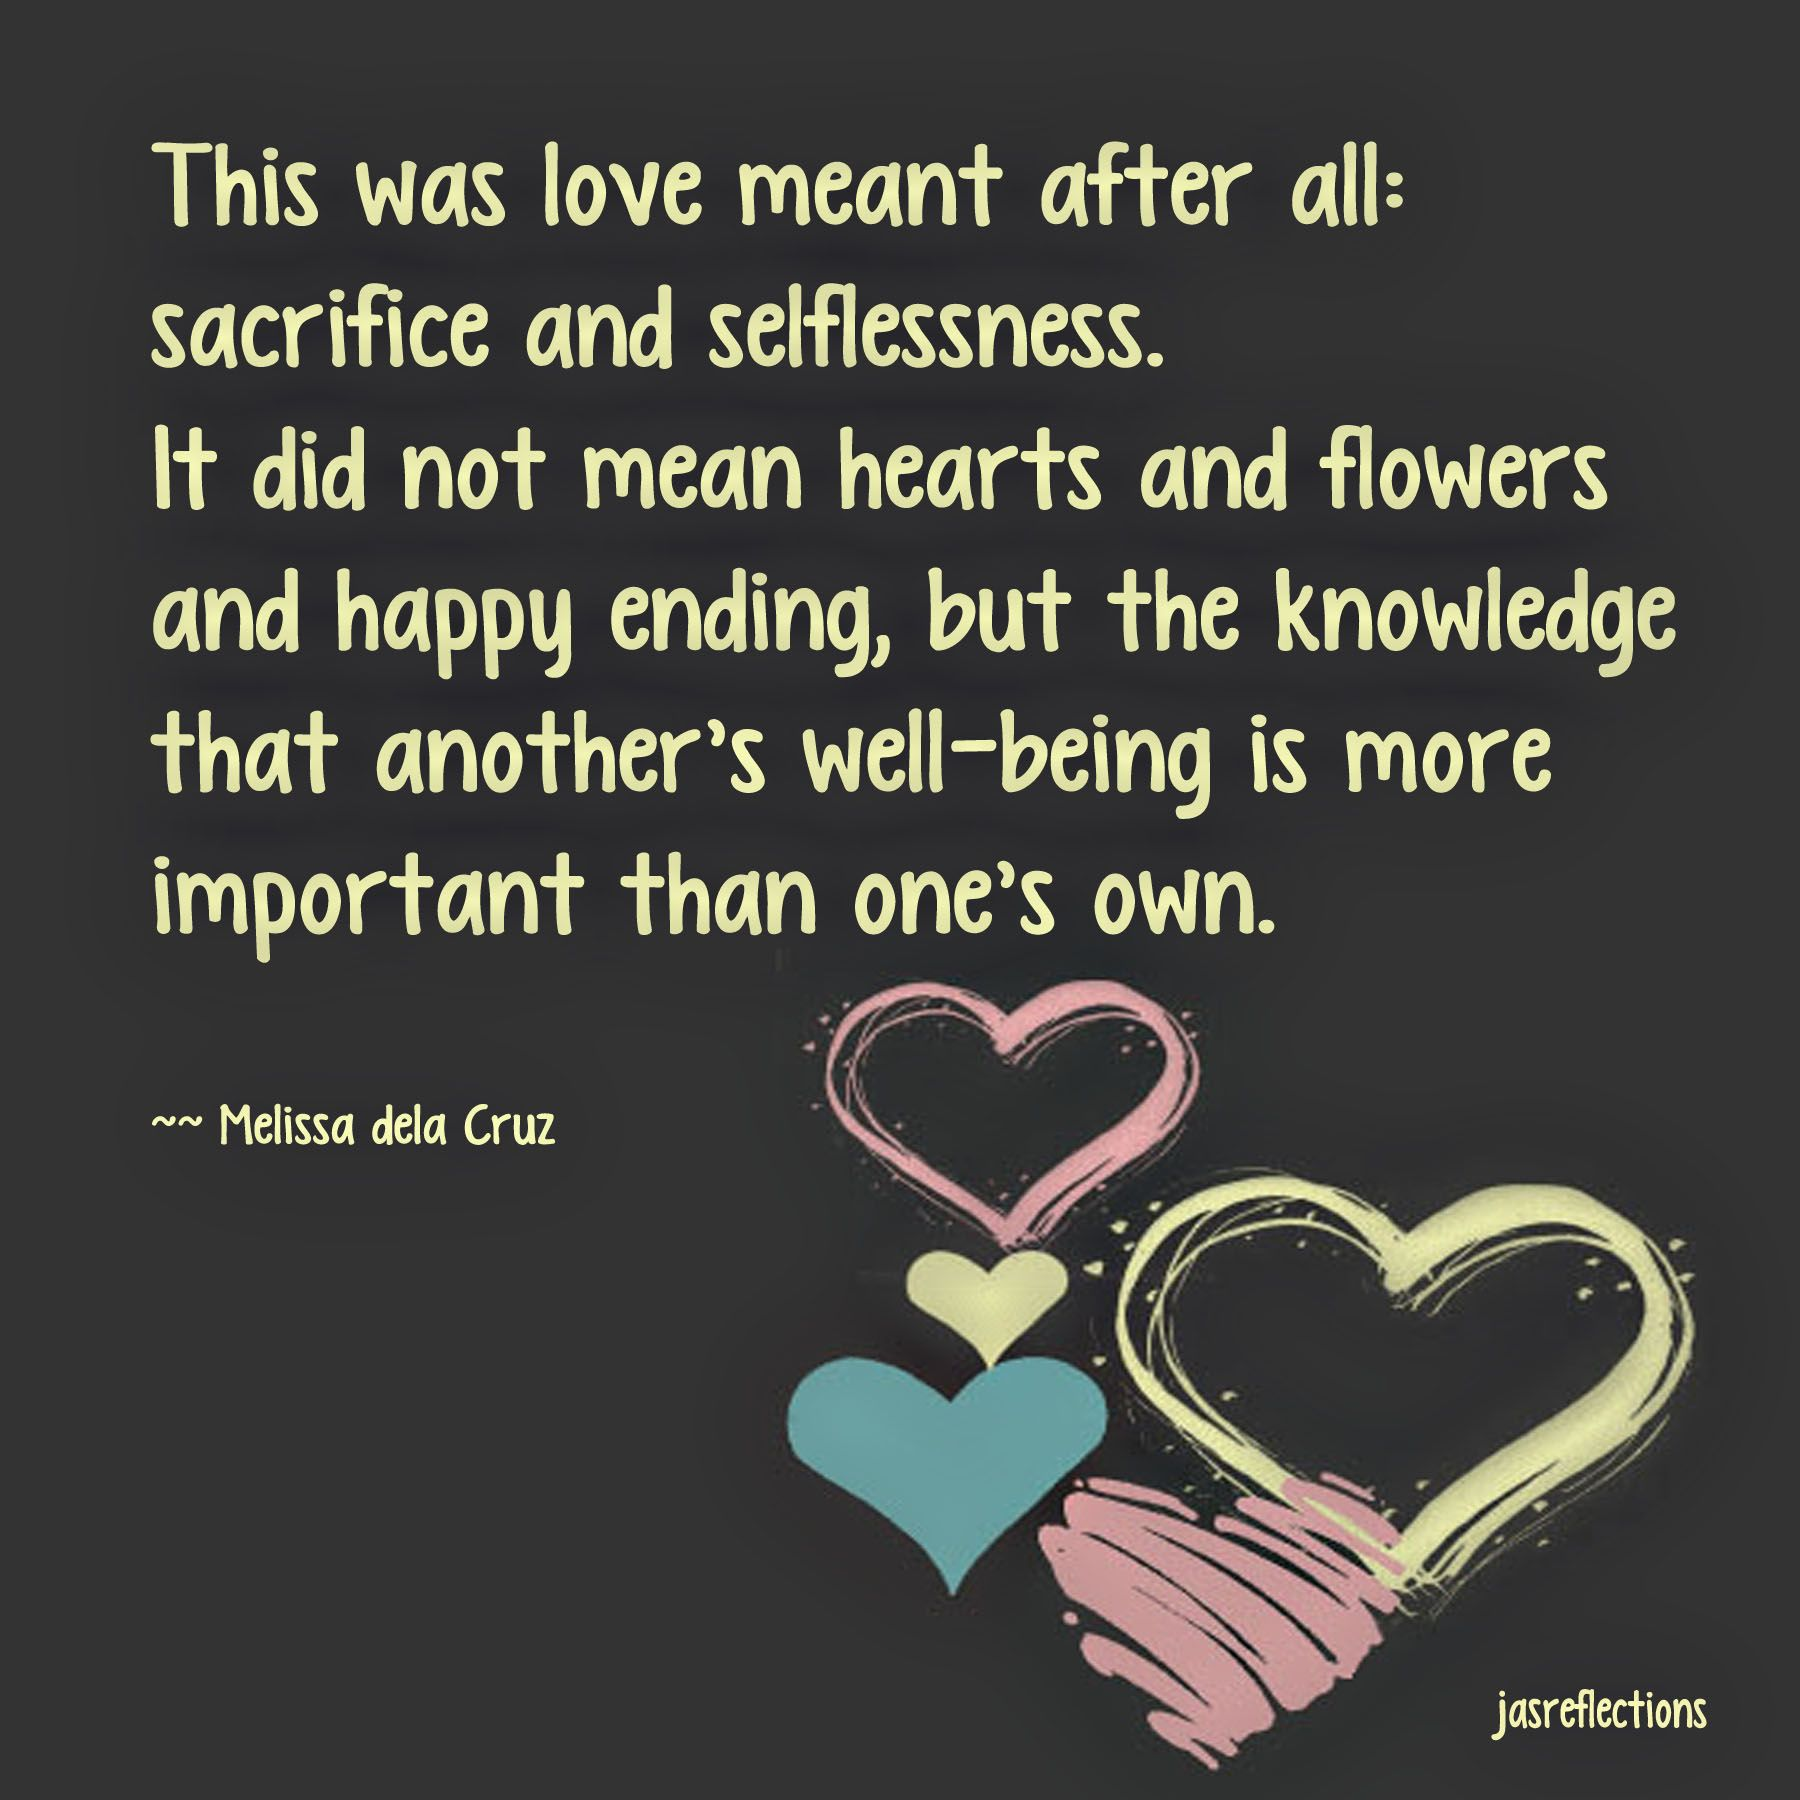 Life Sacrifice Quotes Sacrifice And Selflessness Quotes About Life  Pinterest